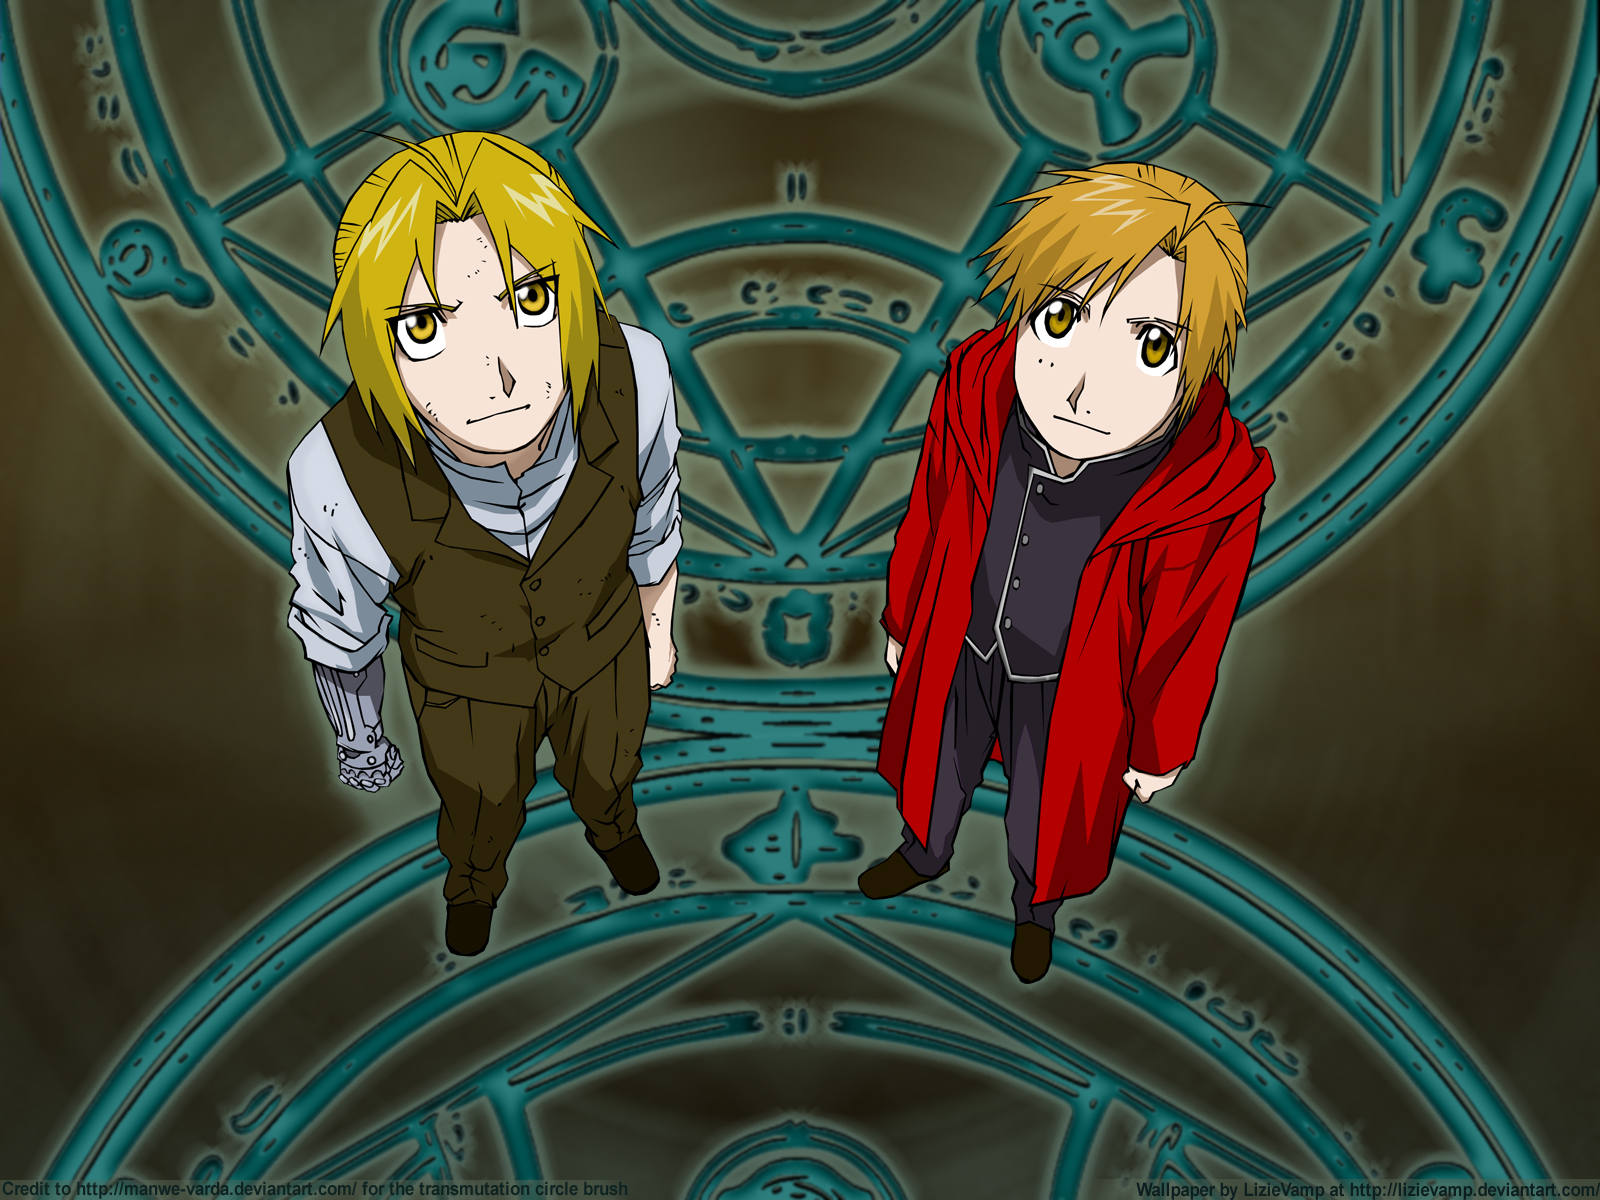 Full Metal Alchemist 04 Free Warrior Anime Wallpaper For Desktop